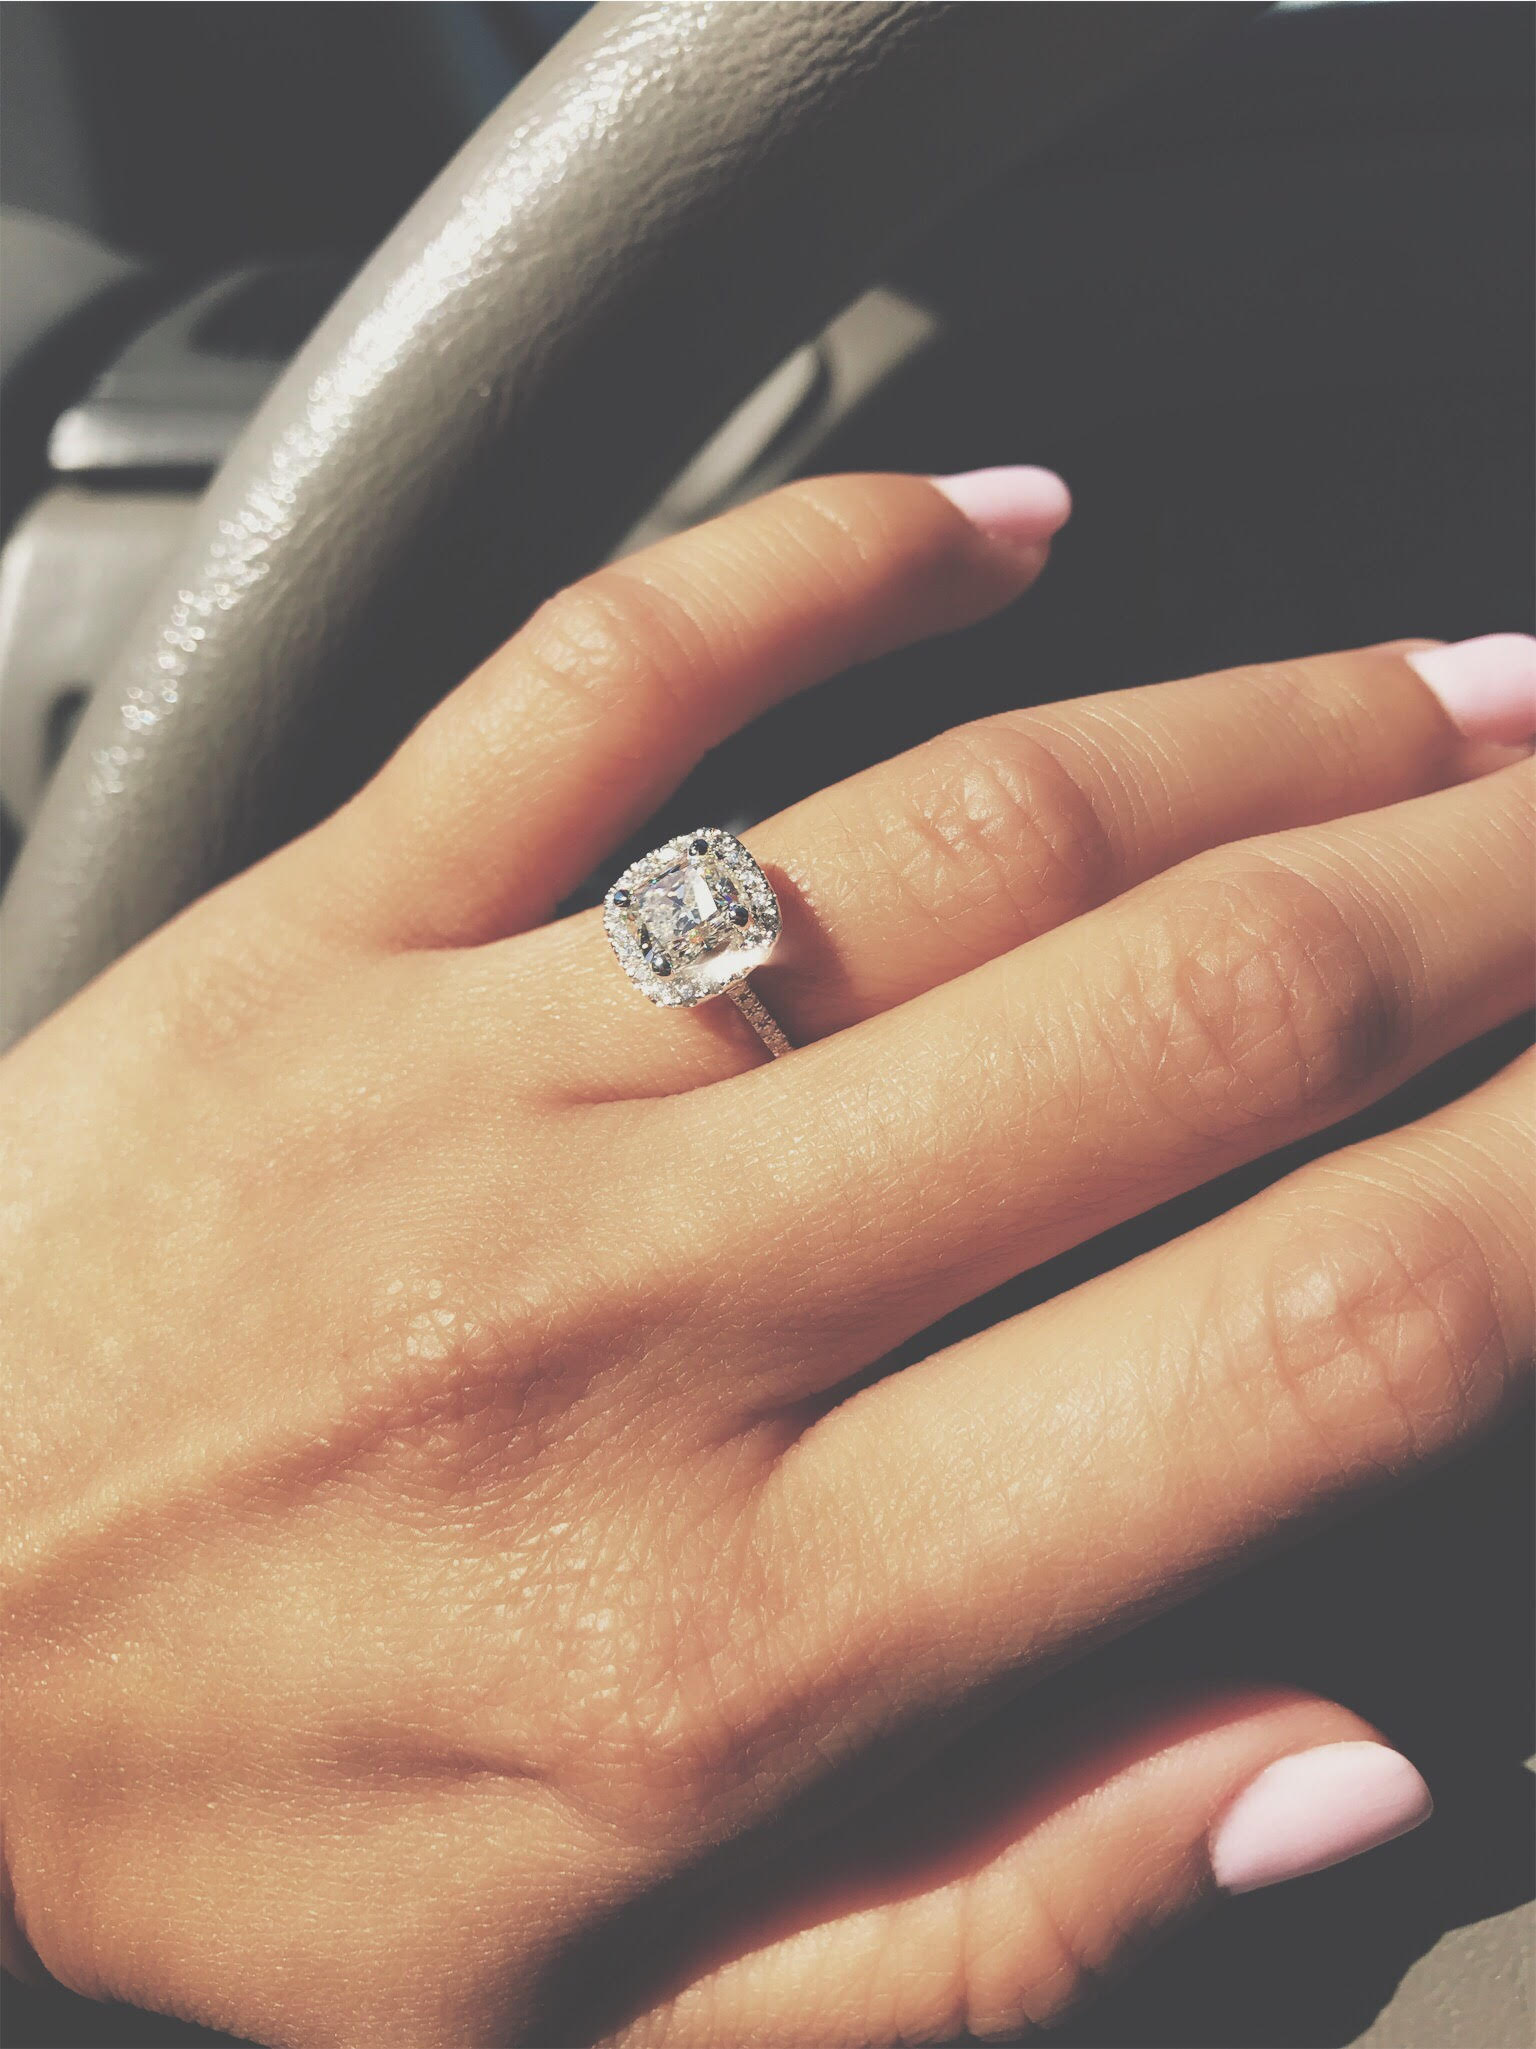 The Ring: a Radiant Cut in a Cushion Halo